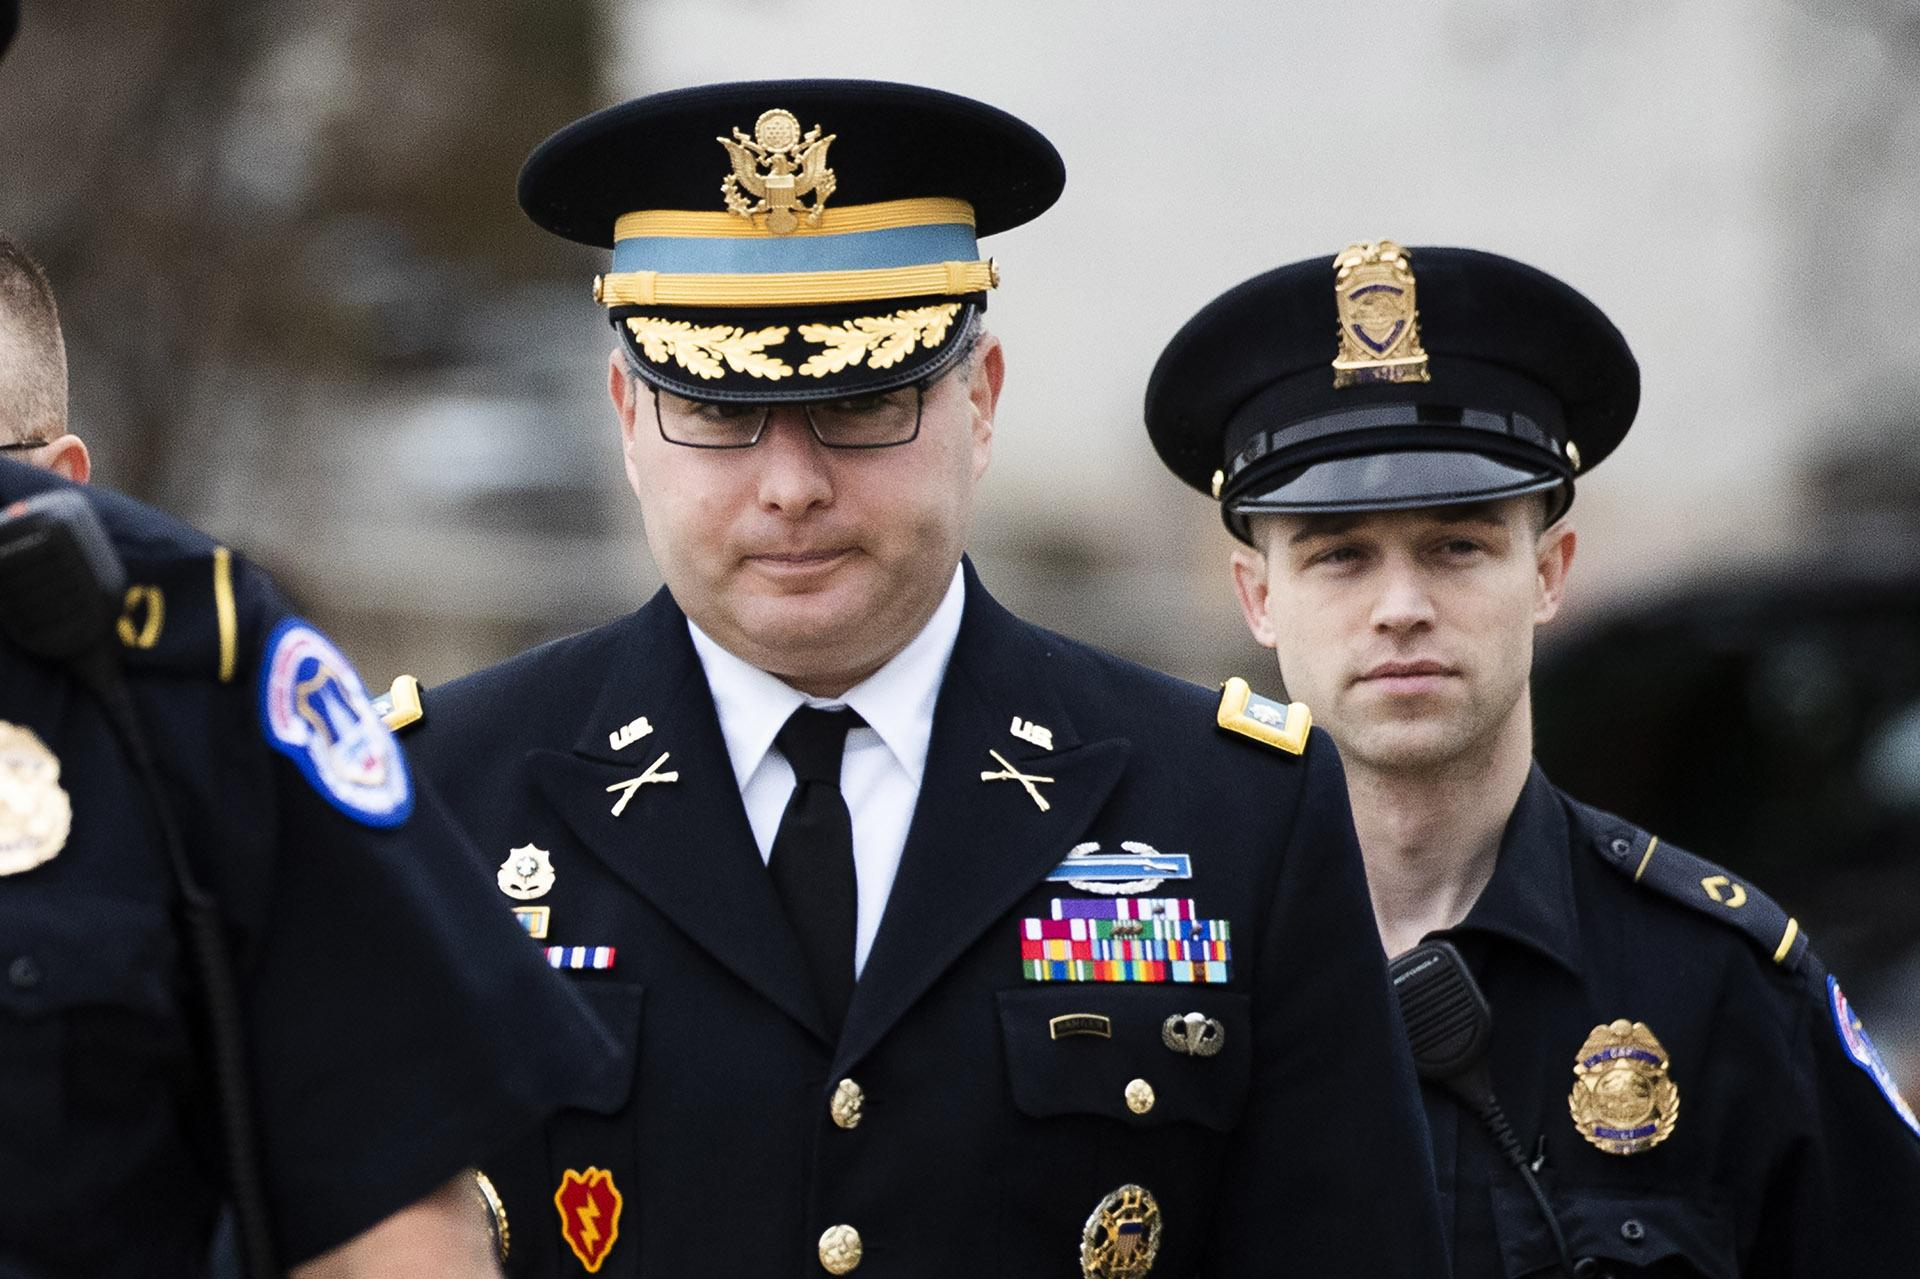 Army Lieutenant Colonel Alexander Vindman, a military officer at the National Security Council, center, arrives on Capitol Hill in Washington, Tuesday, Oct. 29, 2019, to appear before a House Committee on Foreign Affairs, Permanent Select Committee on Intelligence, and Committee on Oversight and Reform joint interview with the transcript to be part of the impeachment inquiry into President Donald Trump. (AP Photo / Manuel Balce Ceneta)